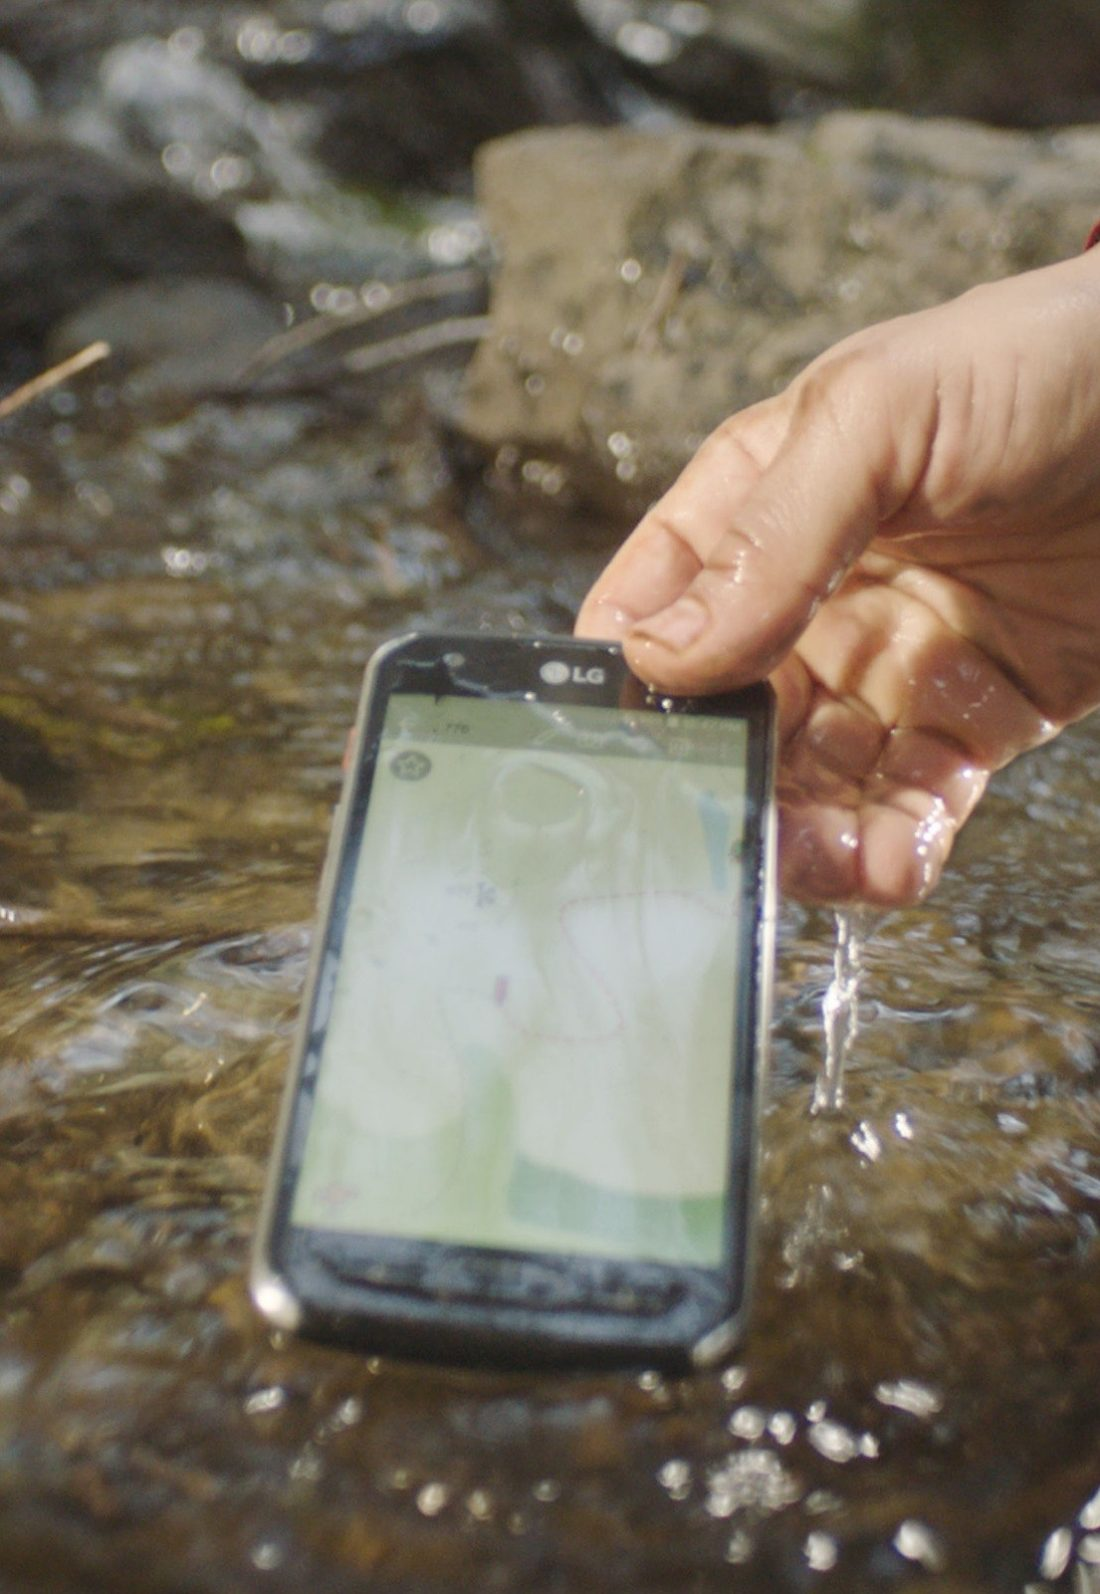 A hand lifting the water-resistant LG X Venture smartphone from water, the phone is still turned on